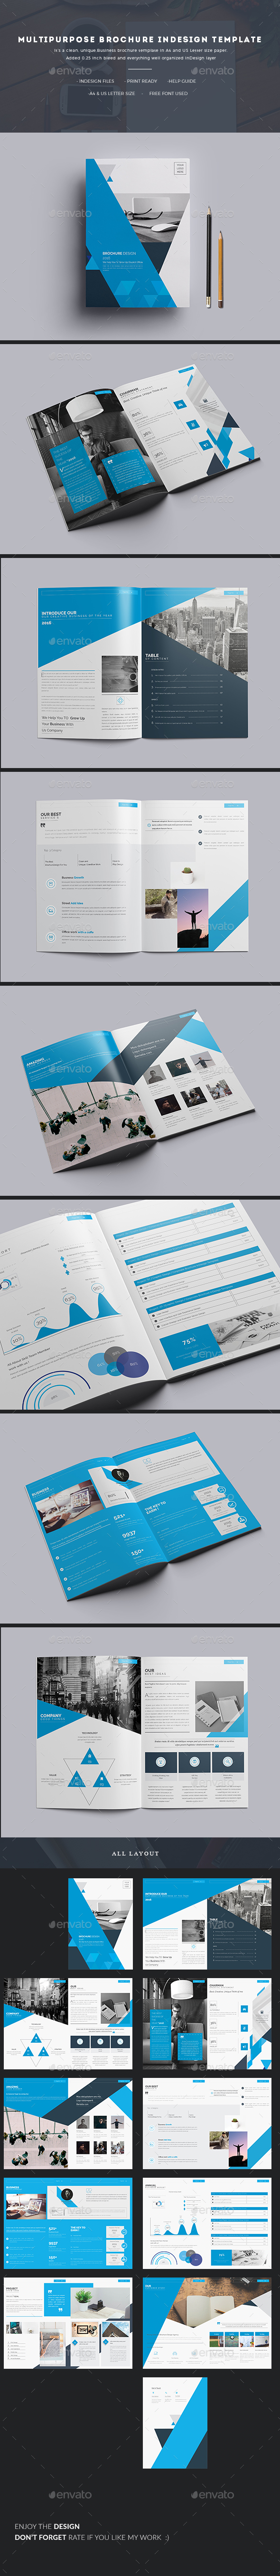 Multipurpose Brochure InDesign Template - Corporate Brochures